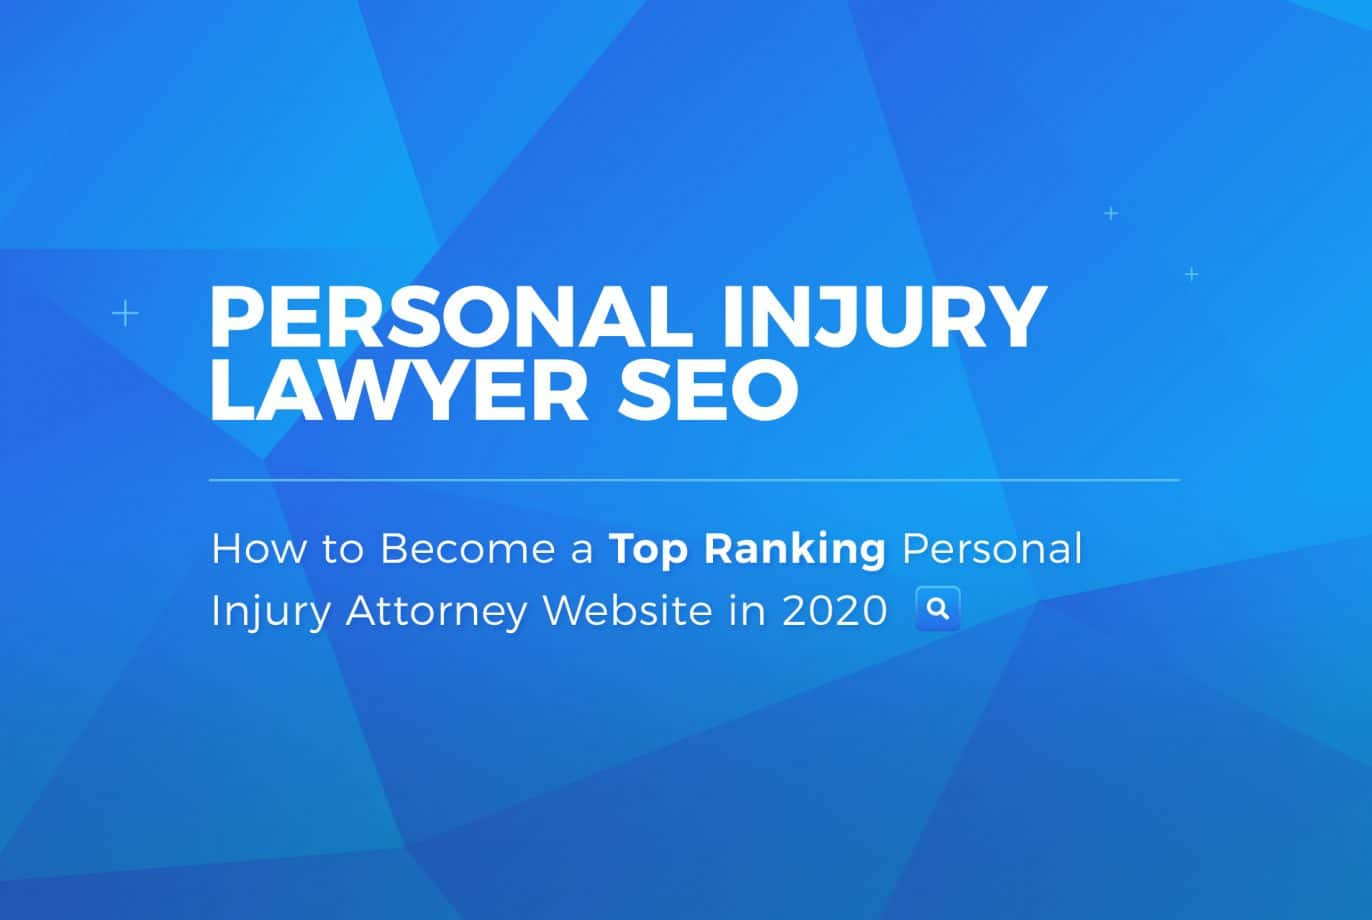 Personal Injury Leads: Best Performing Personal Injury Attorney Websites of 2020